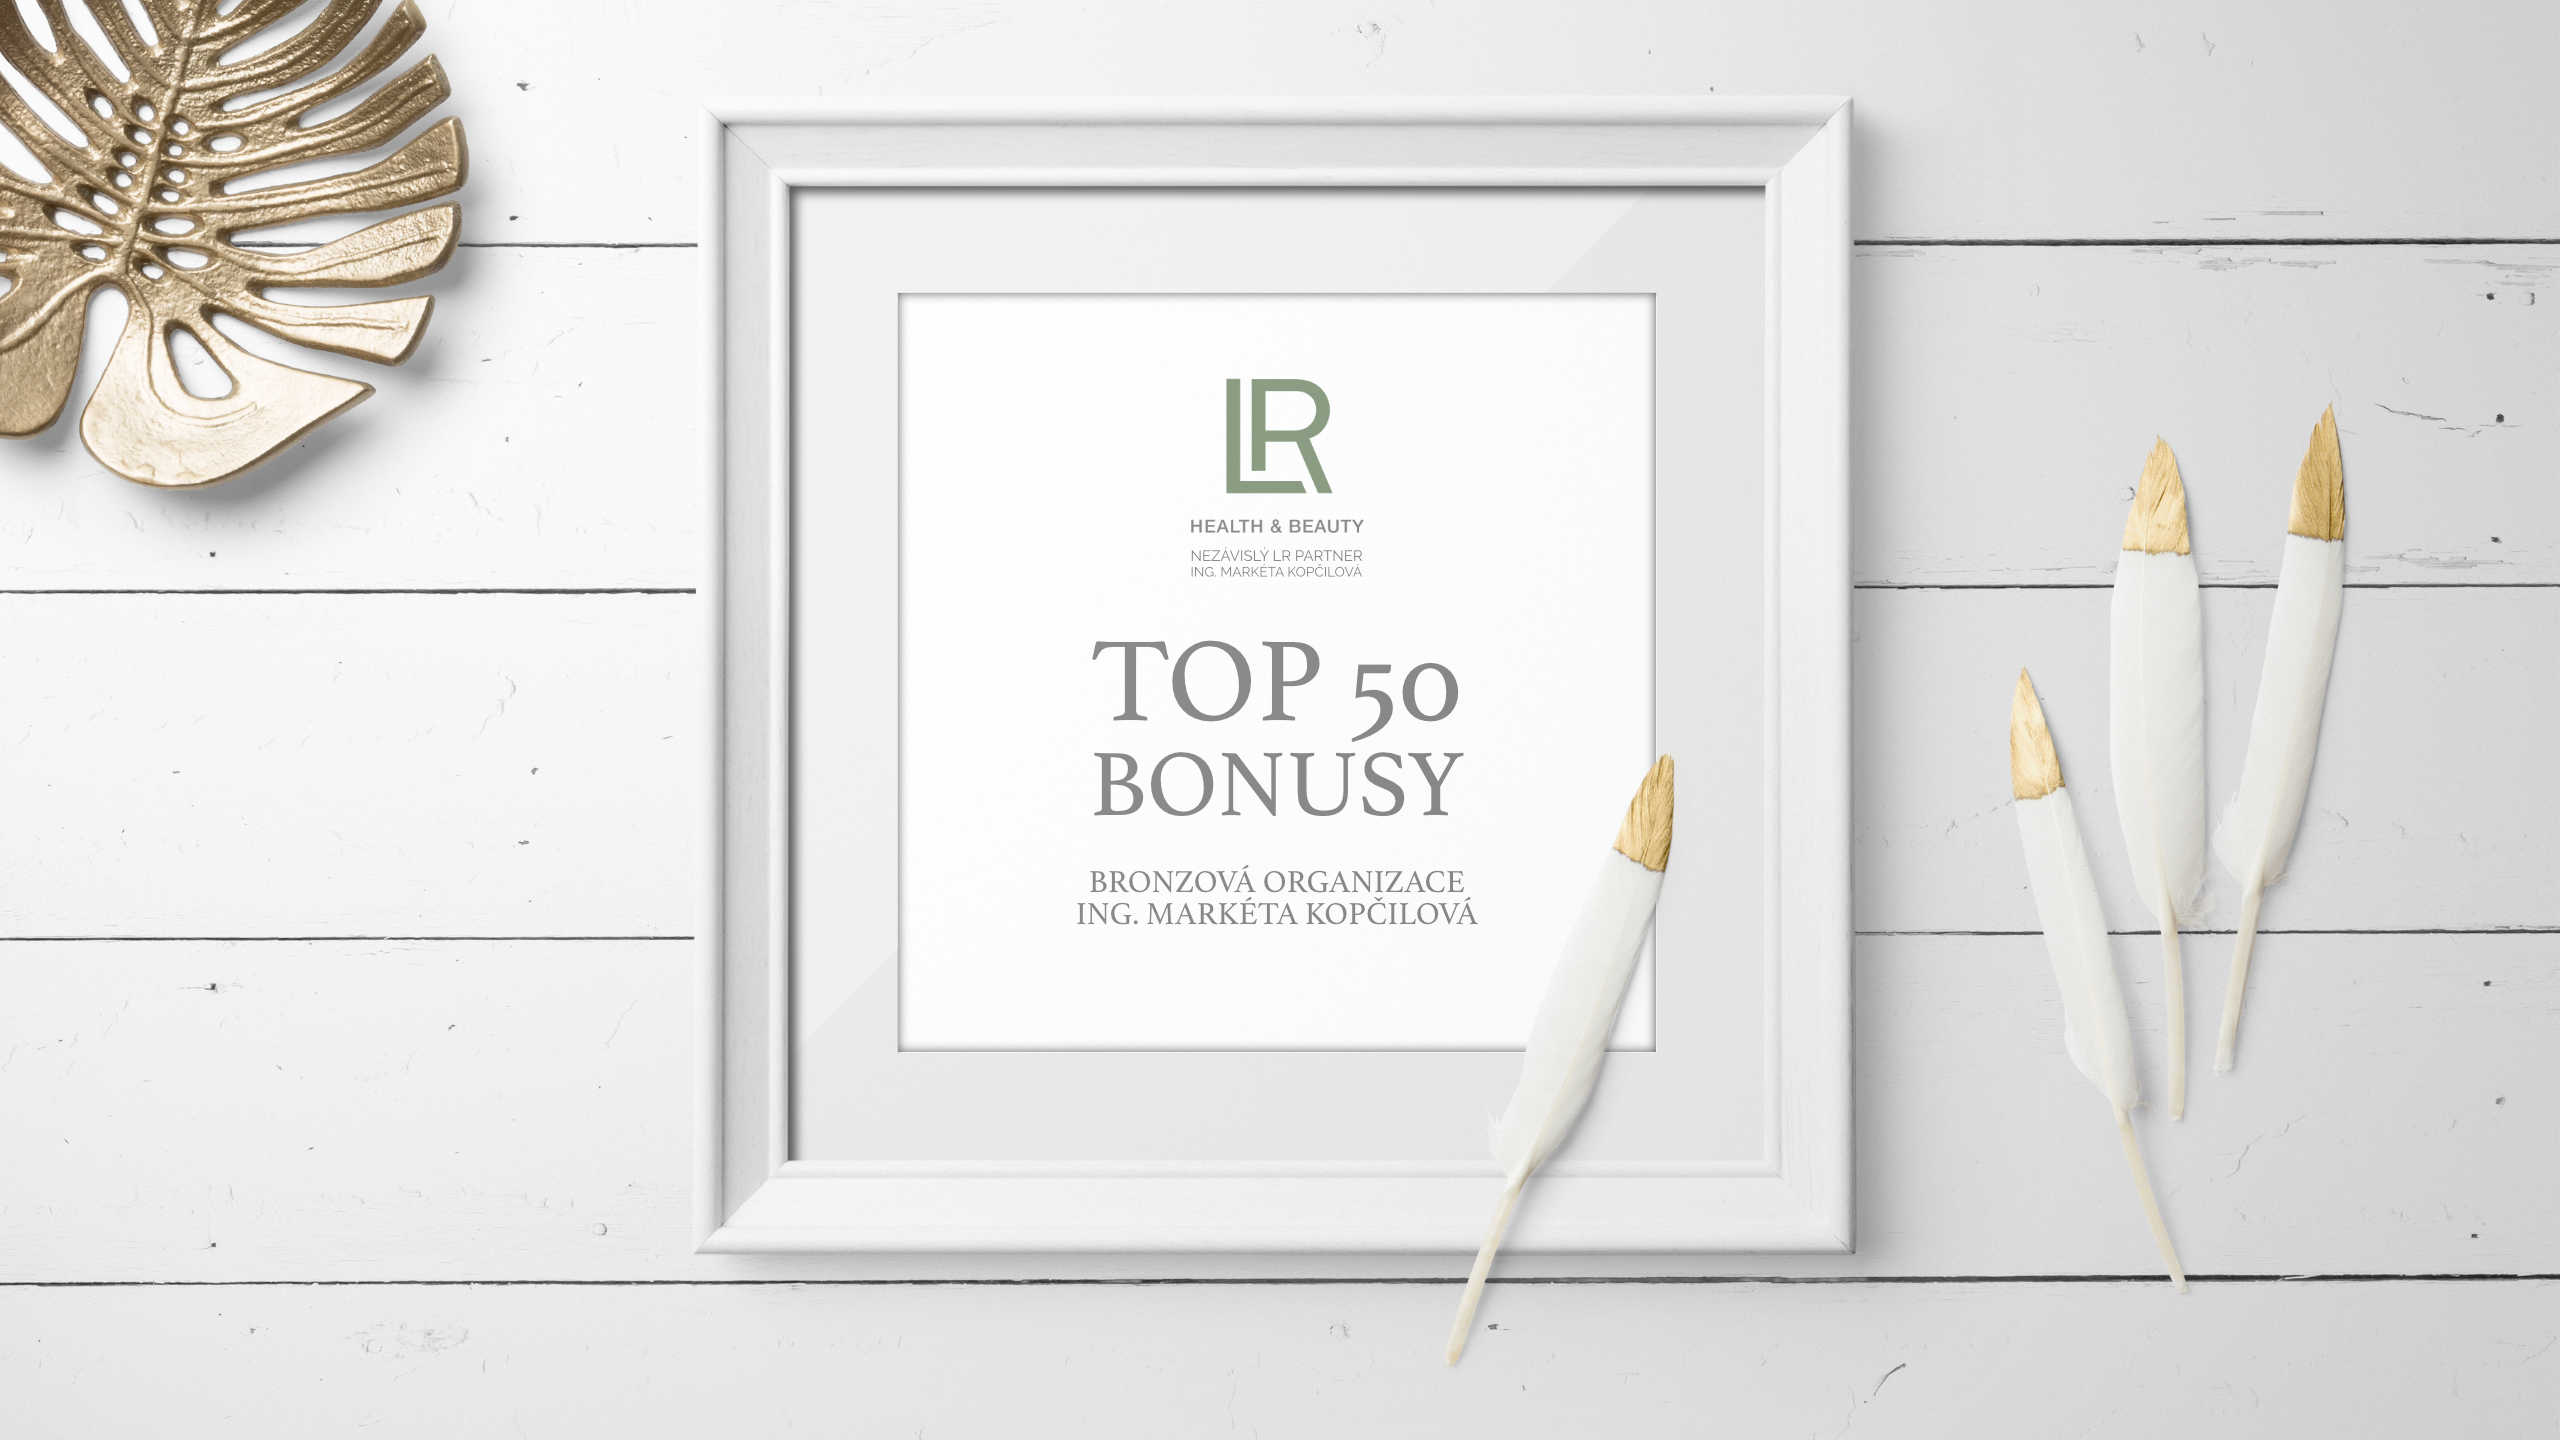 LR HEALTH & BEAUTY TOP 50 BONUSY: srpen 2018